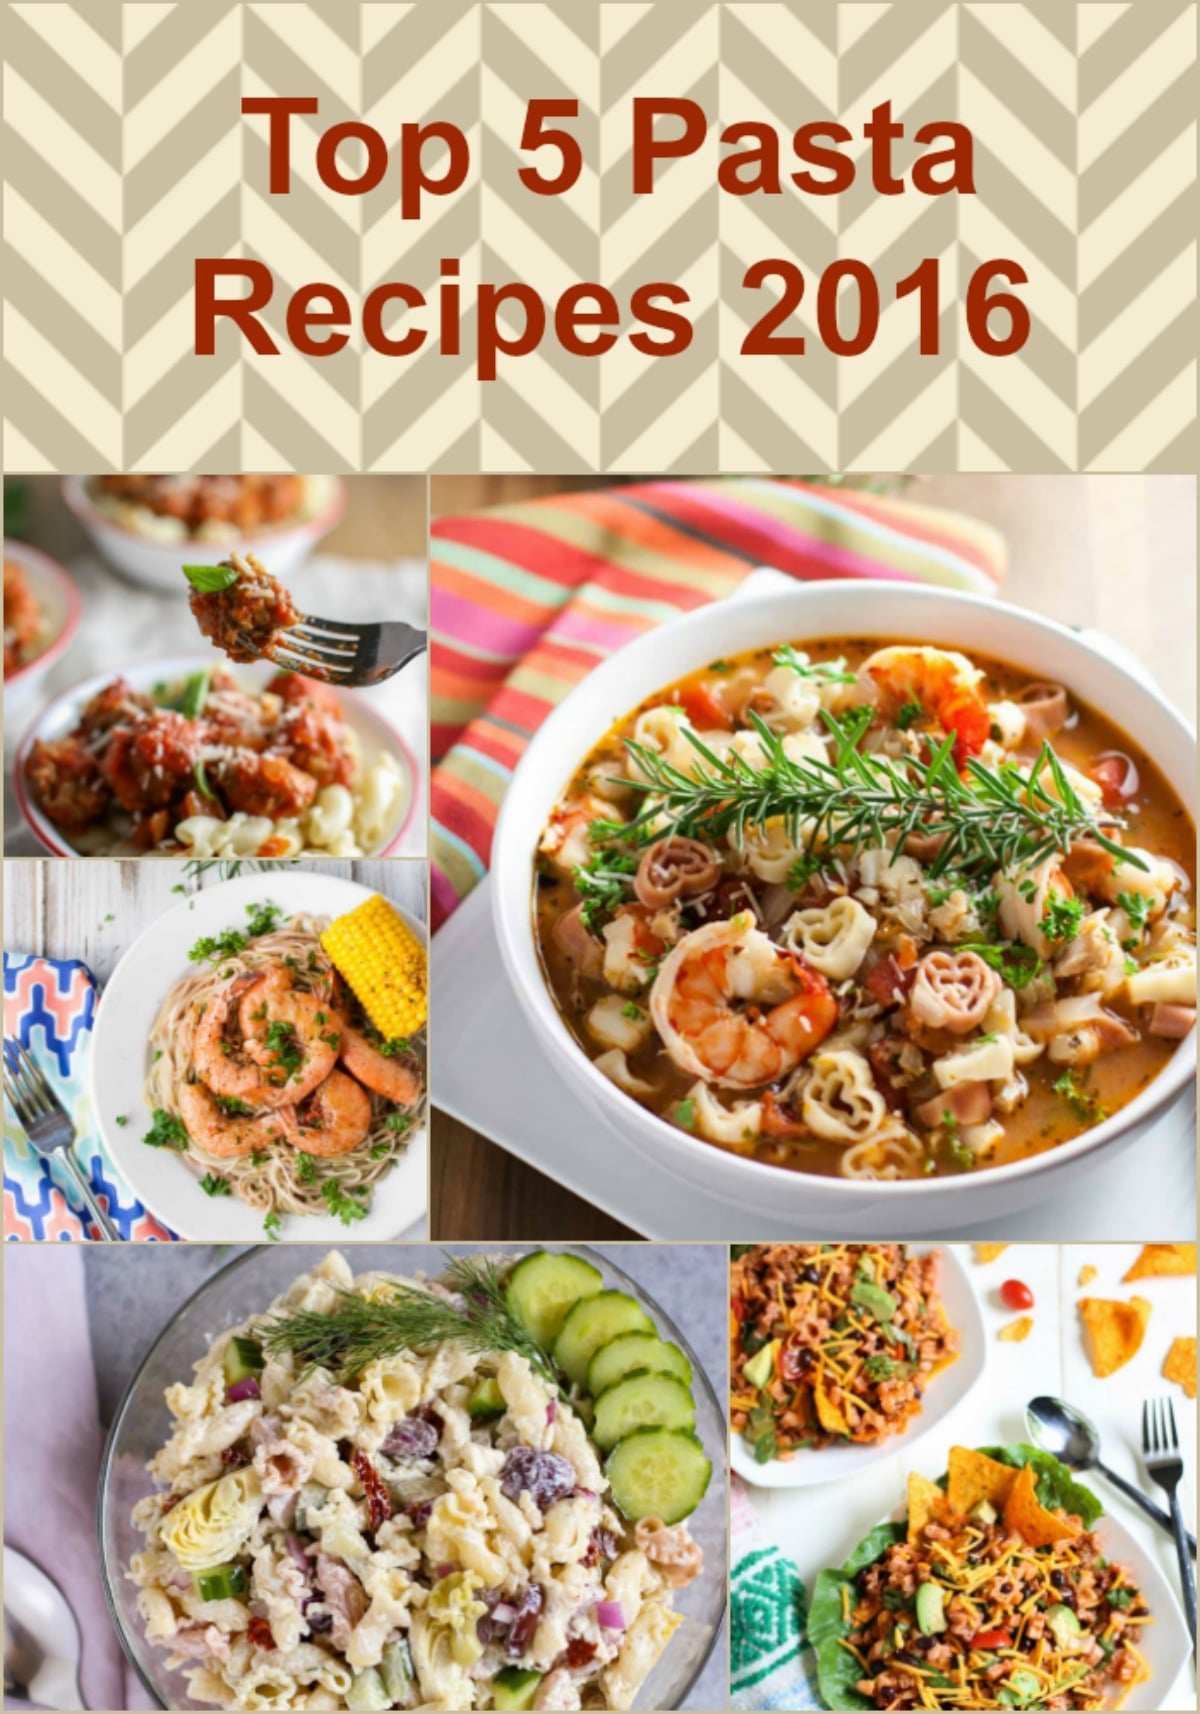 Top 5 Recipes 2016 | WorldofPastabilities.com | Delicious and Simple recipes that your family will love! Yum!